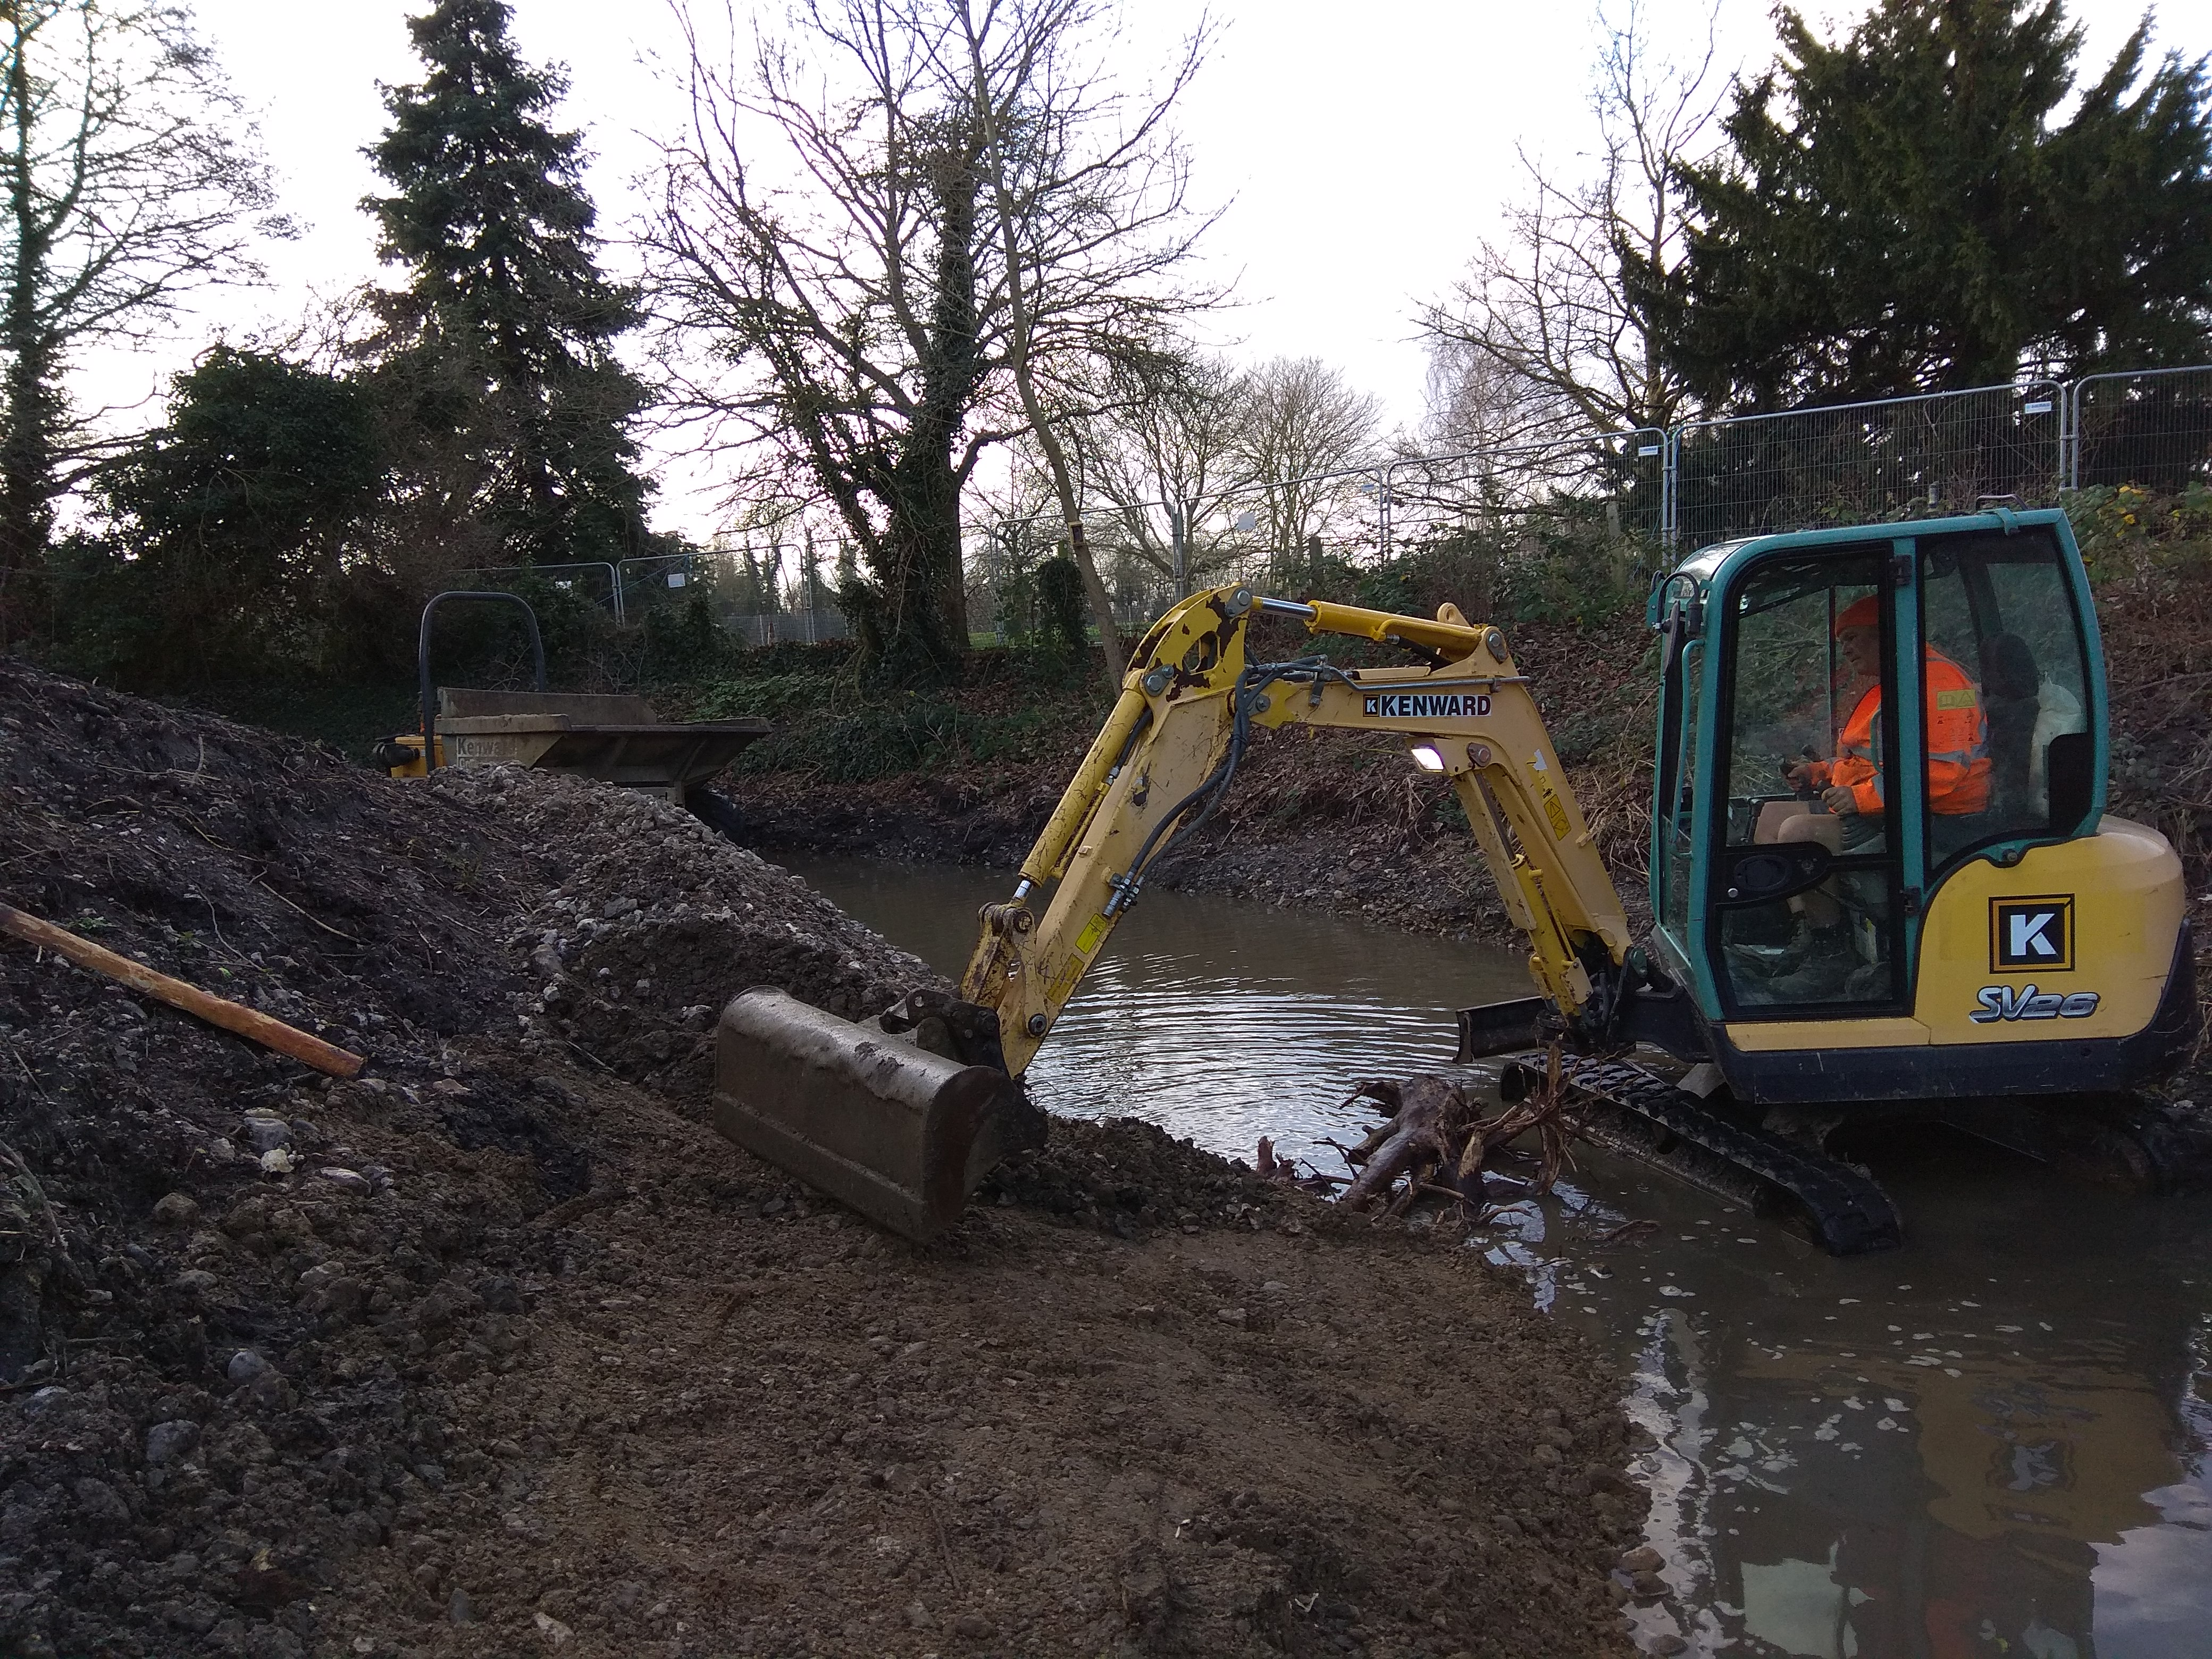 The stockpiled gravel being reused in front of the retained silt to provide a gently sloping inside bend